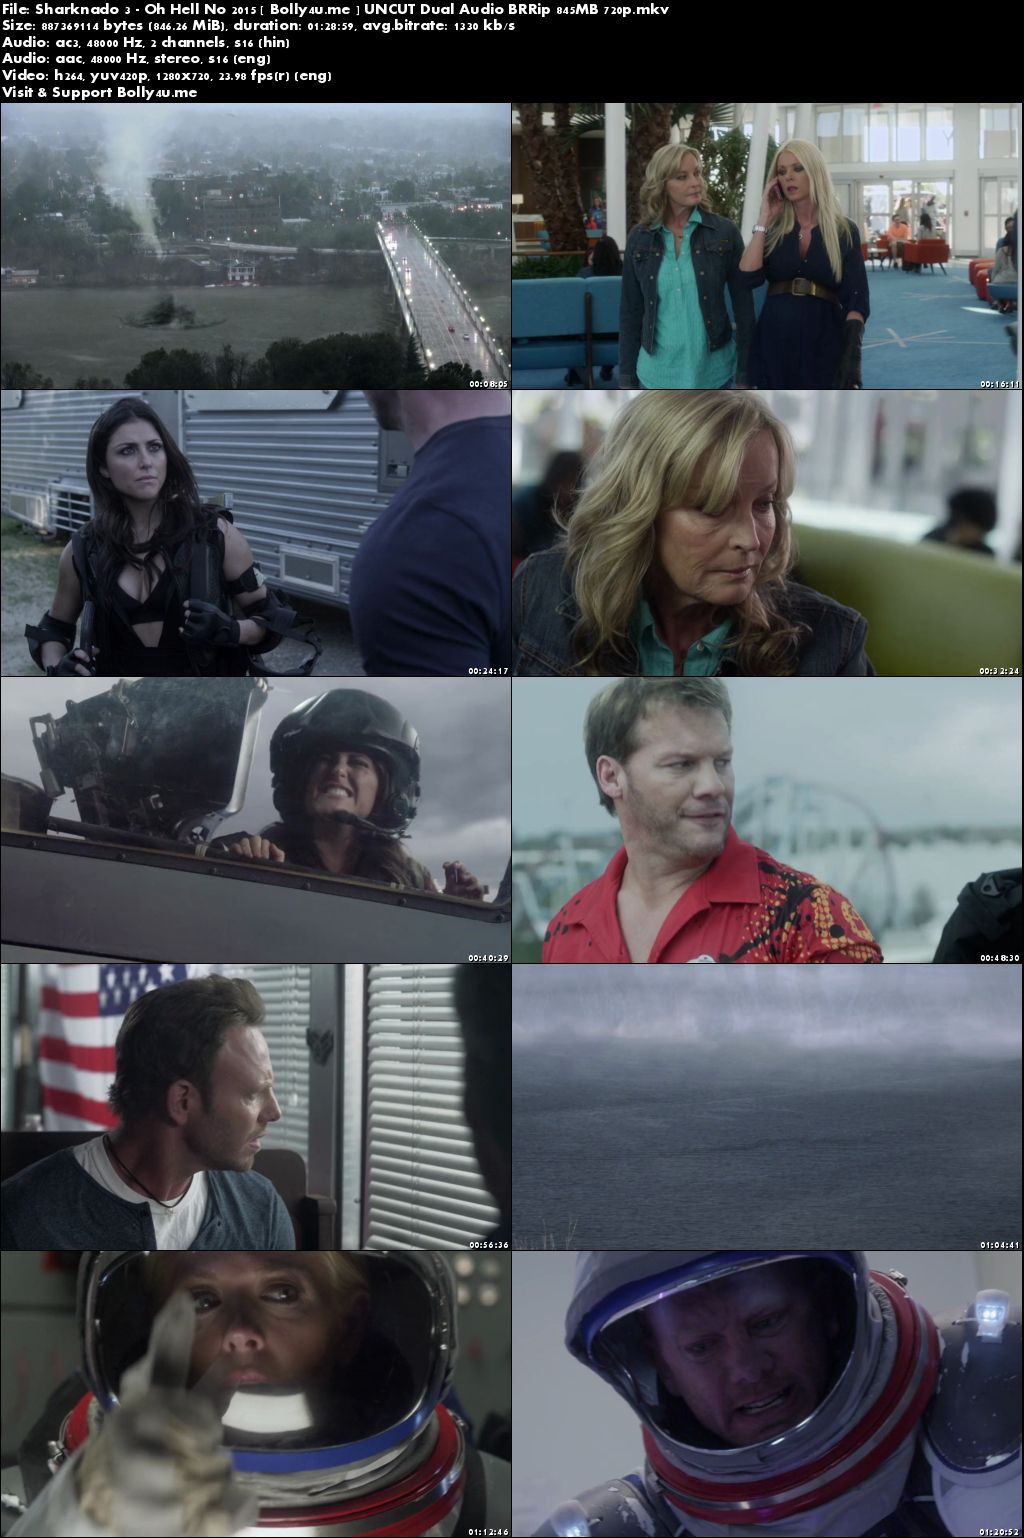 Sharknado 3 Oh Hell No 2015 BRRip 300MB UNCUT Hindi Dual Audio 480p Download